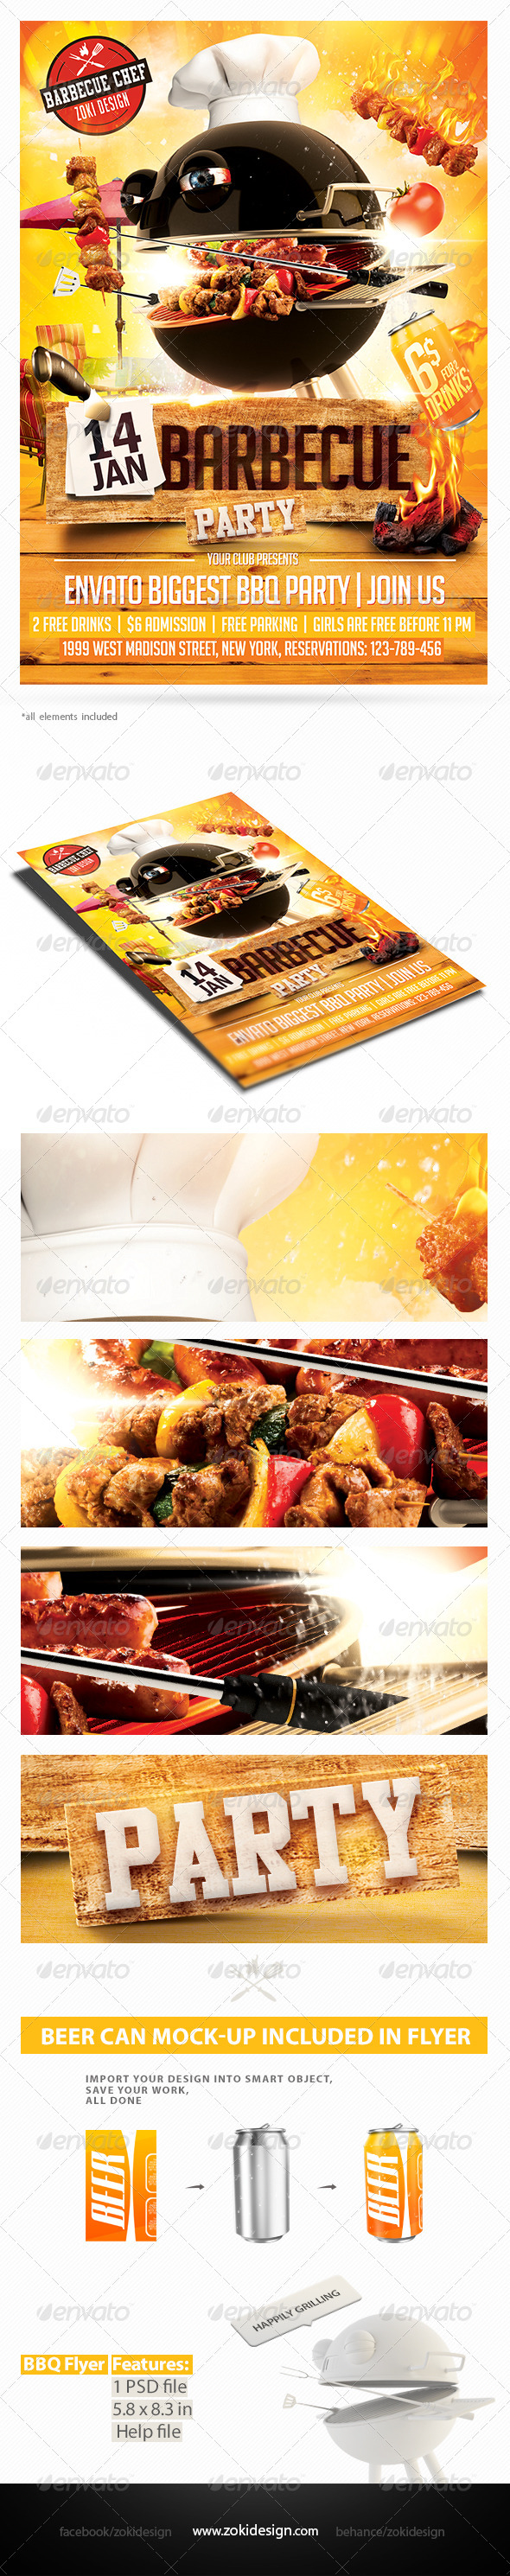 GraphicRiver Barbecue Party Flyer 8366794